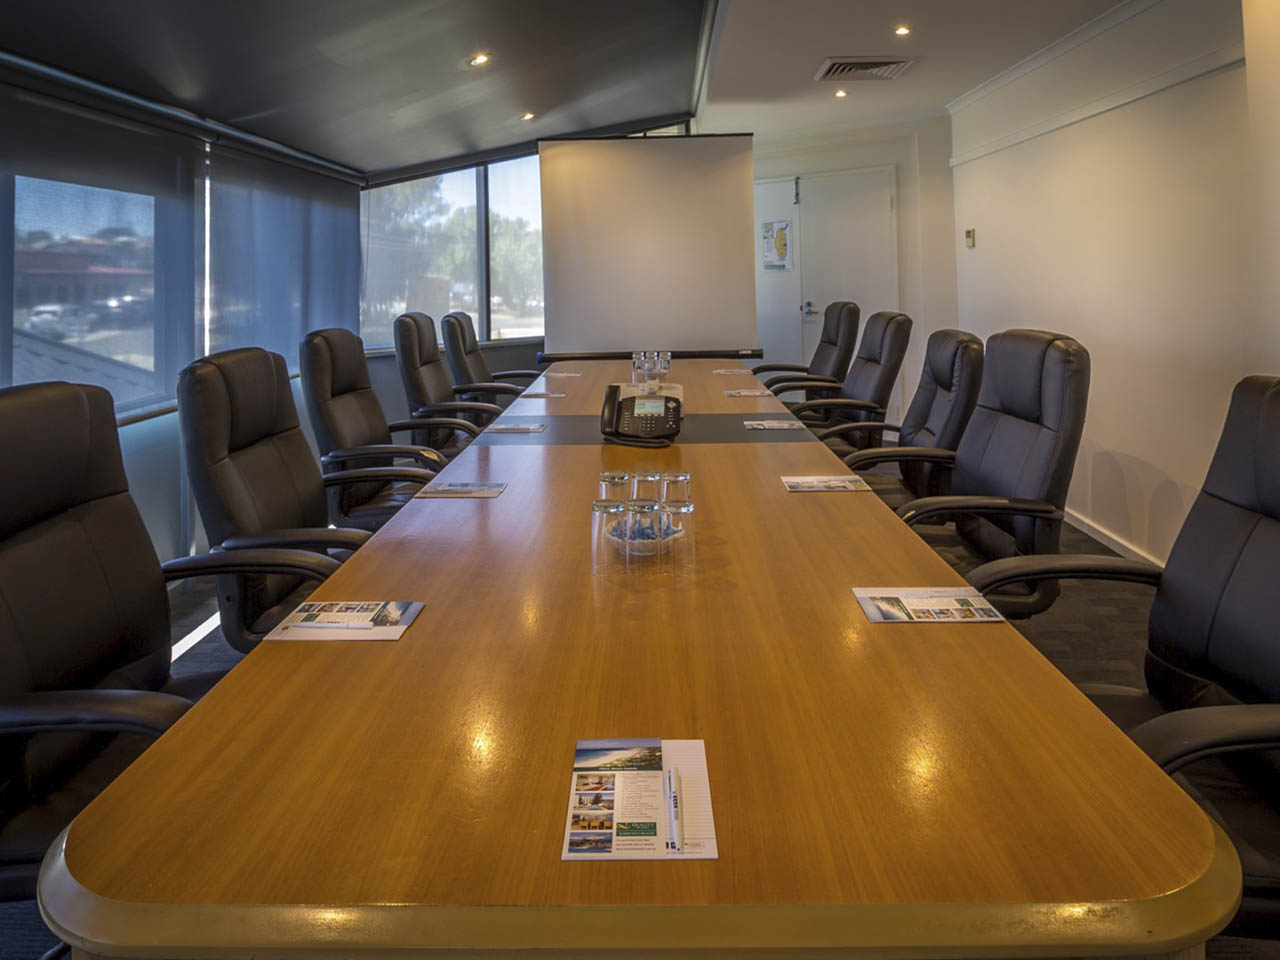 Coporate Meeting Room With Grey Chairs.